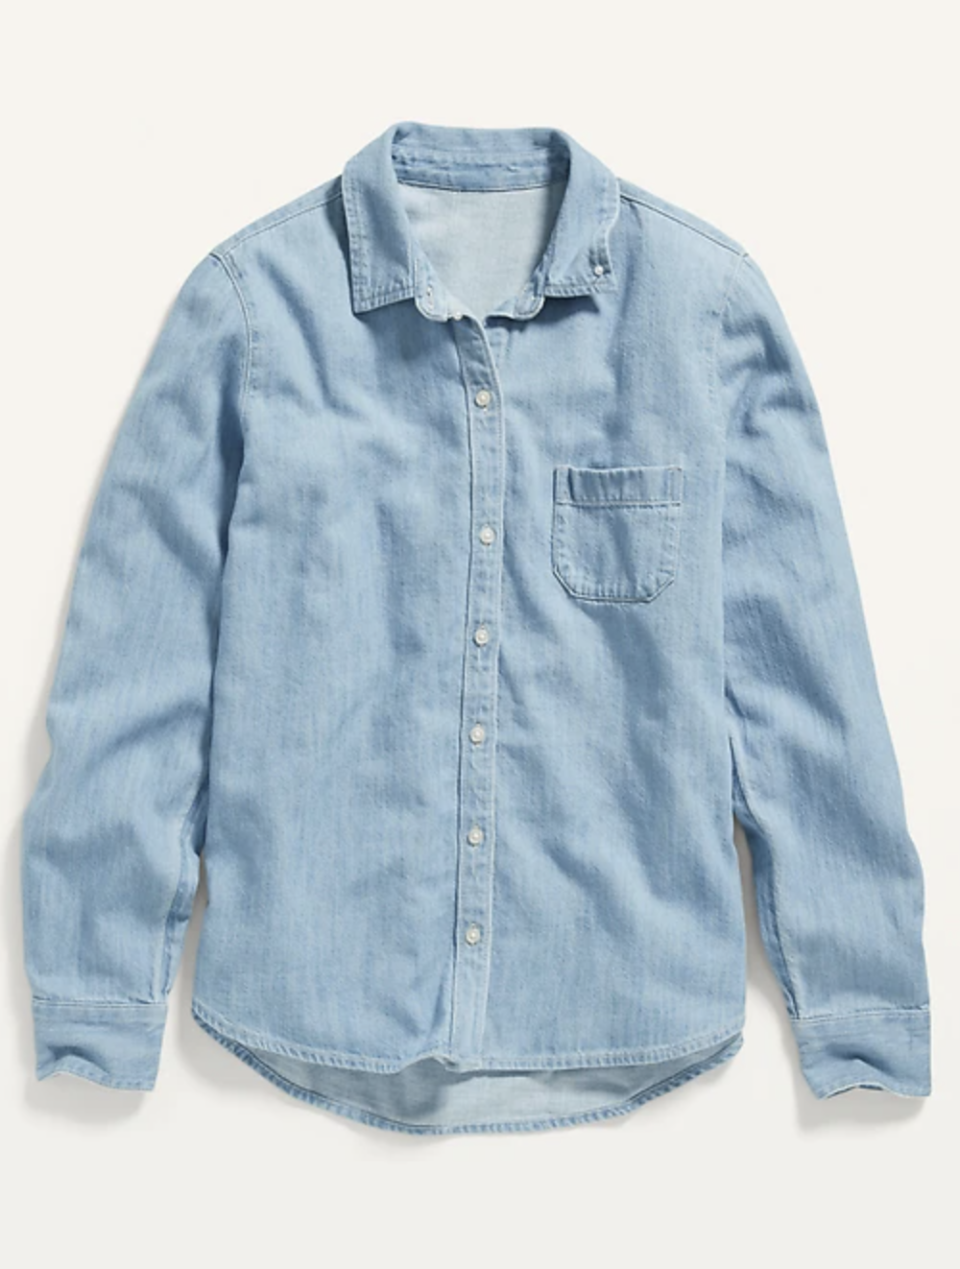 Classic Jean Shirt for Women - Old Navy.